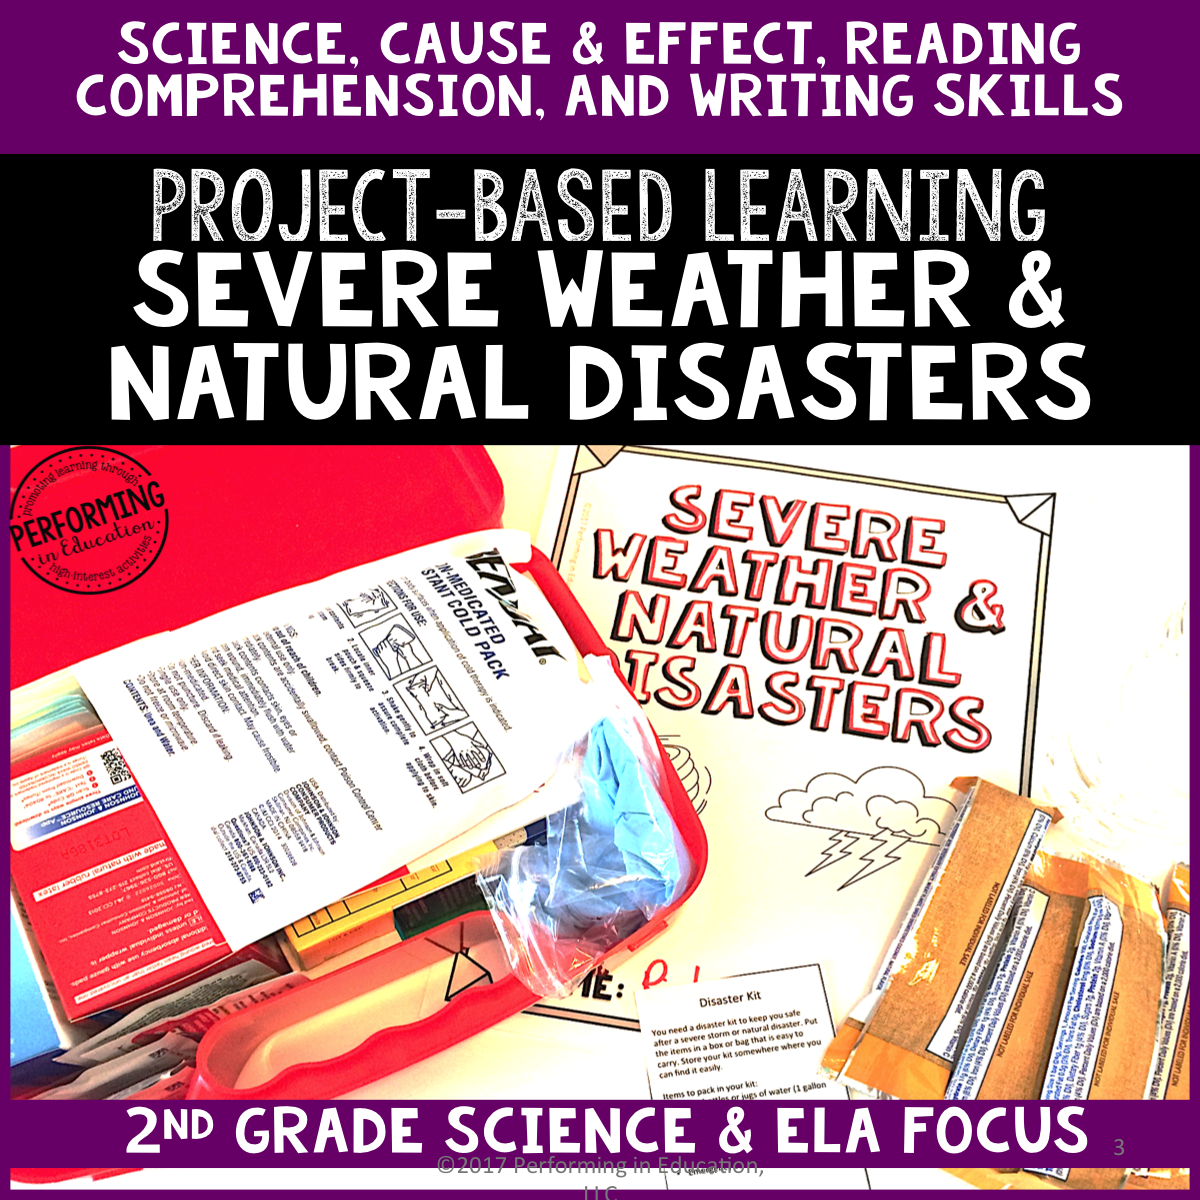 2nd Grade Project-Based Learning: Severe Weather and Natural Disasters 00062